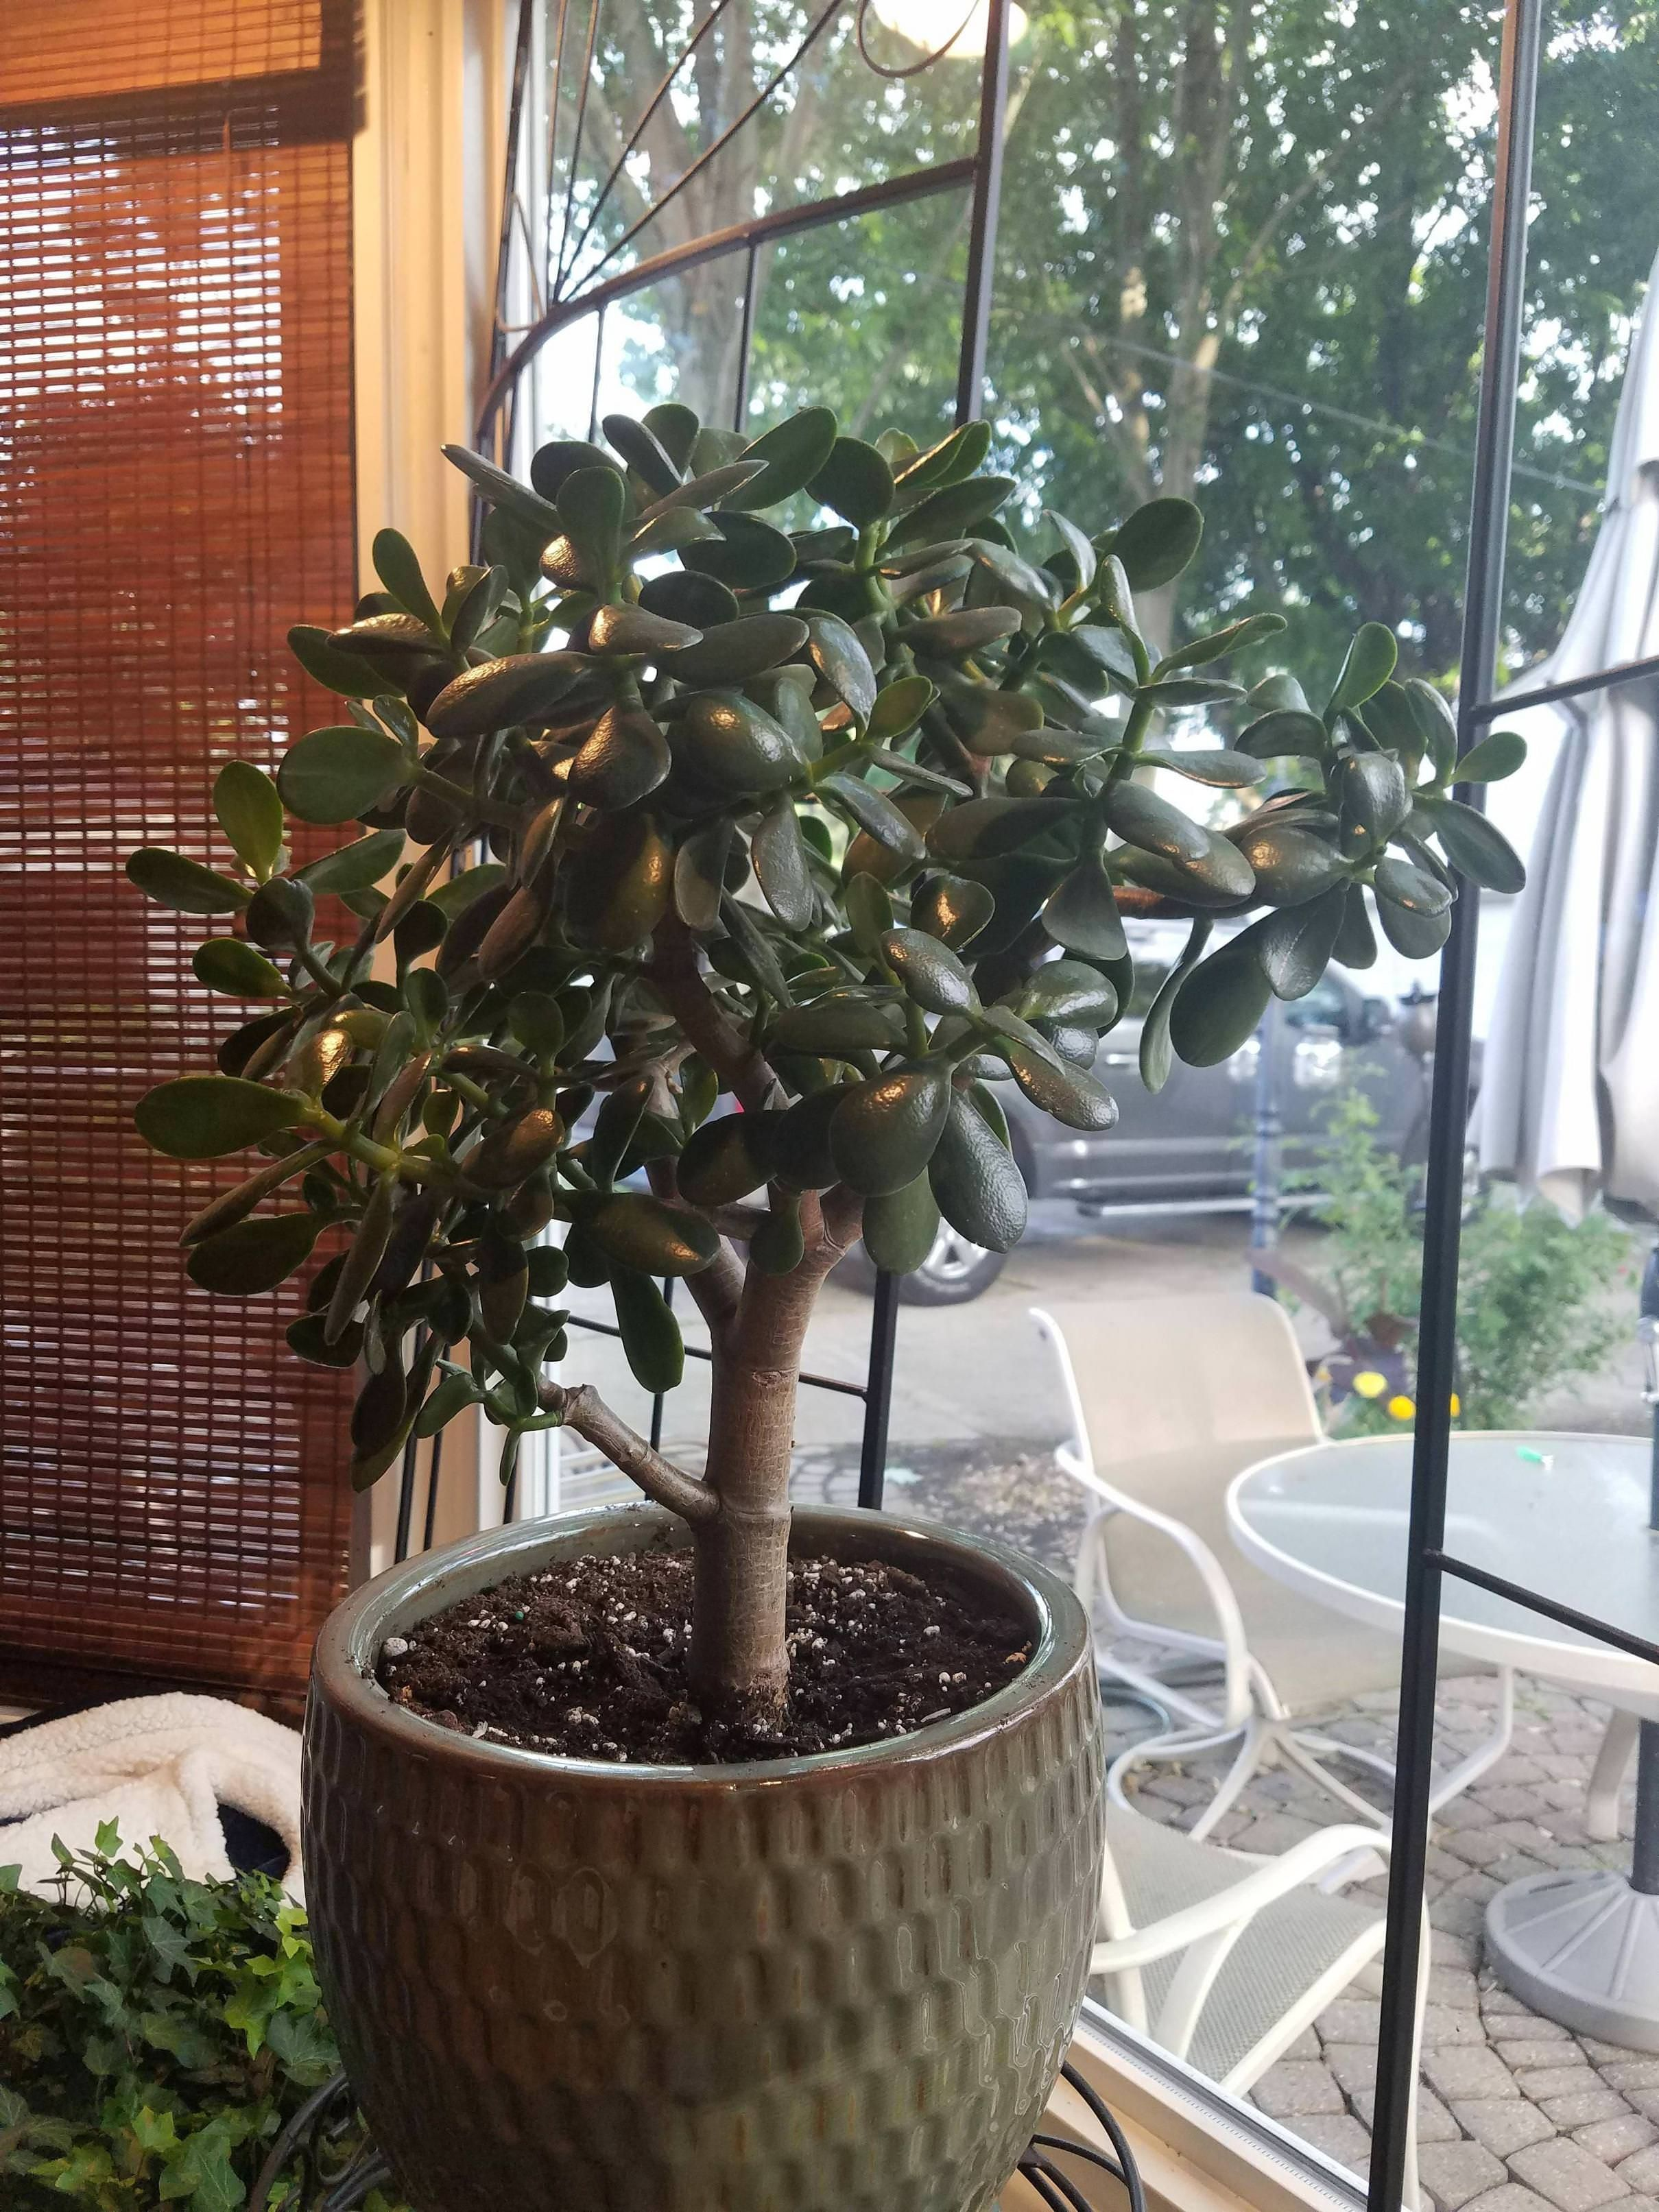 Will Pruning My Jade Plant Help Keep It Leaf Dense And Thicken It S Trunk Gardening Garden Diy Home Flowers Roses Nature Plants Plant Help Jade Plants